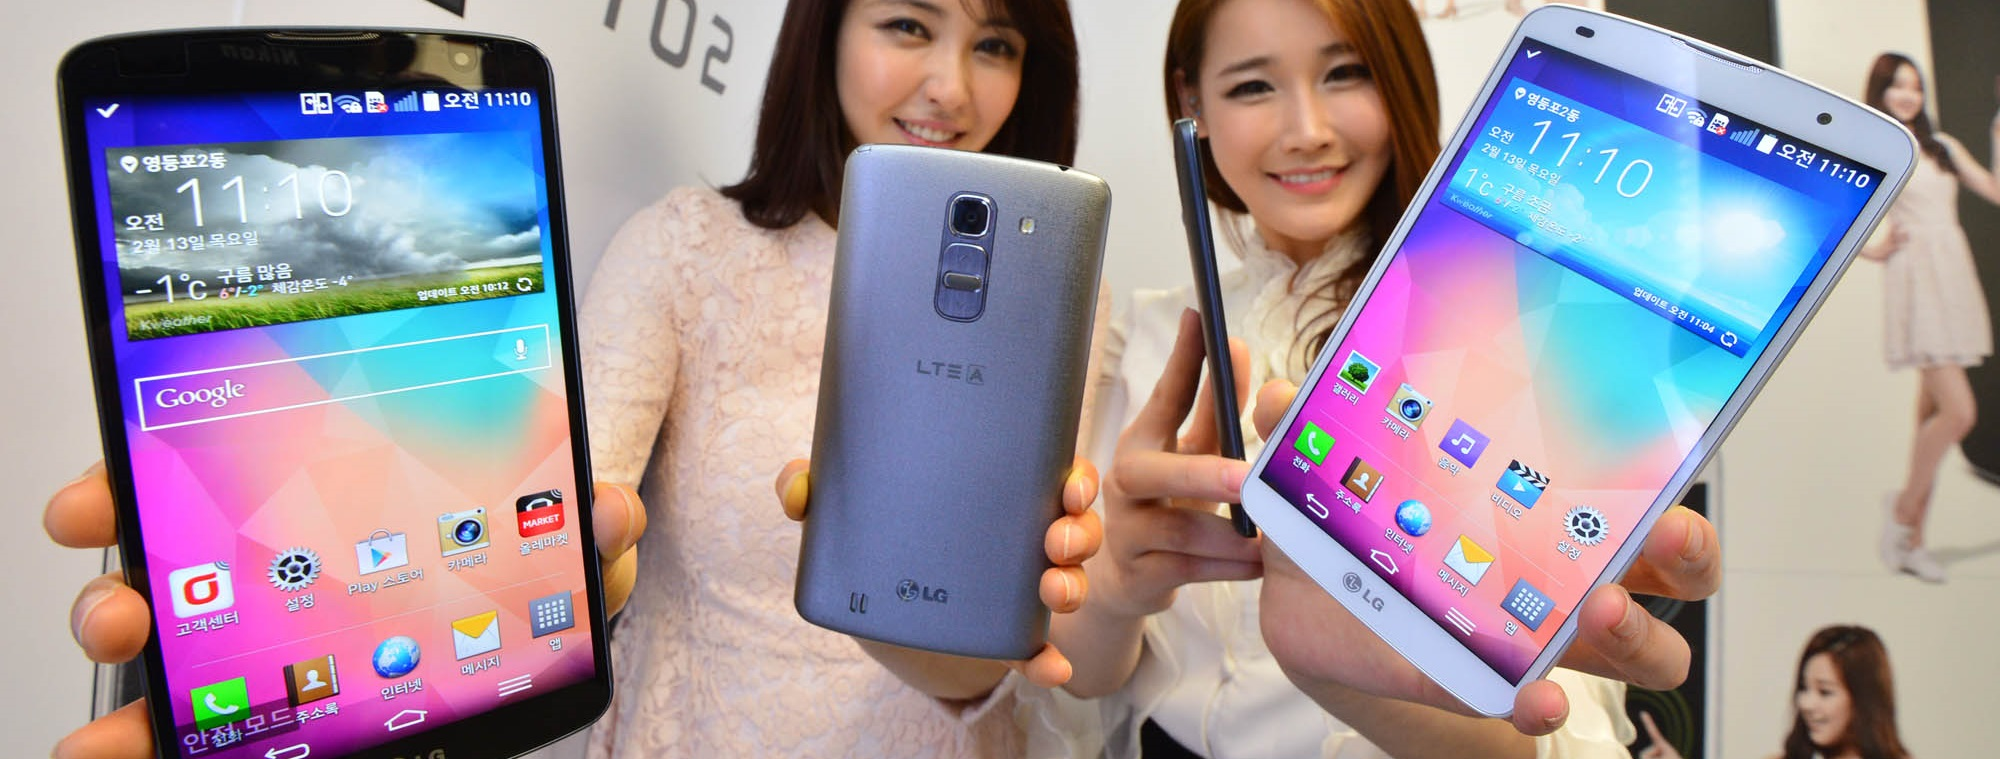 LG Announces KitKat-Powered L Series III Smartphones